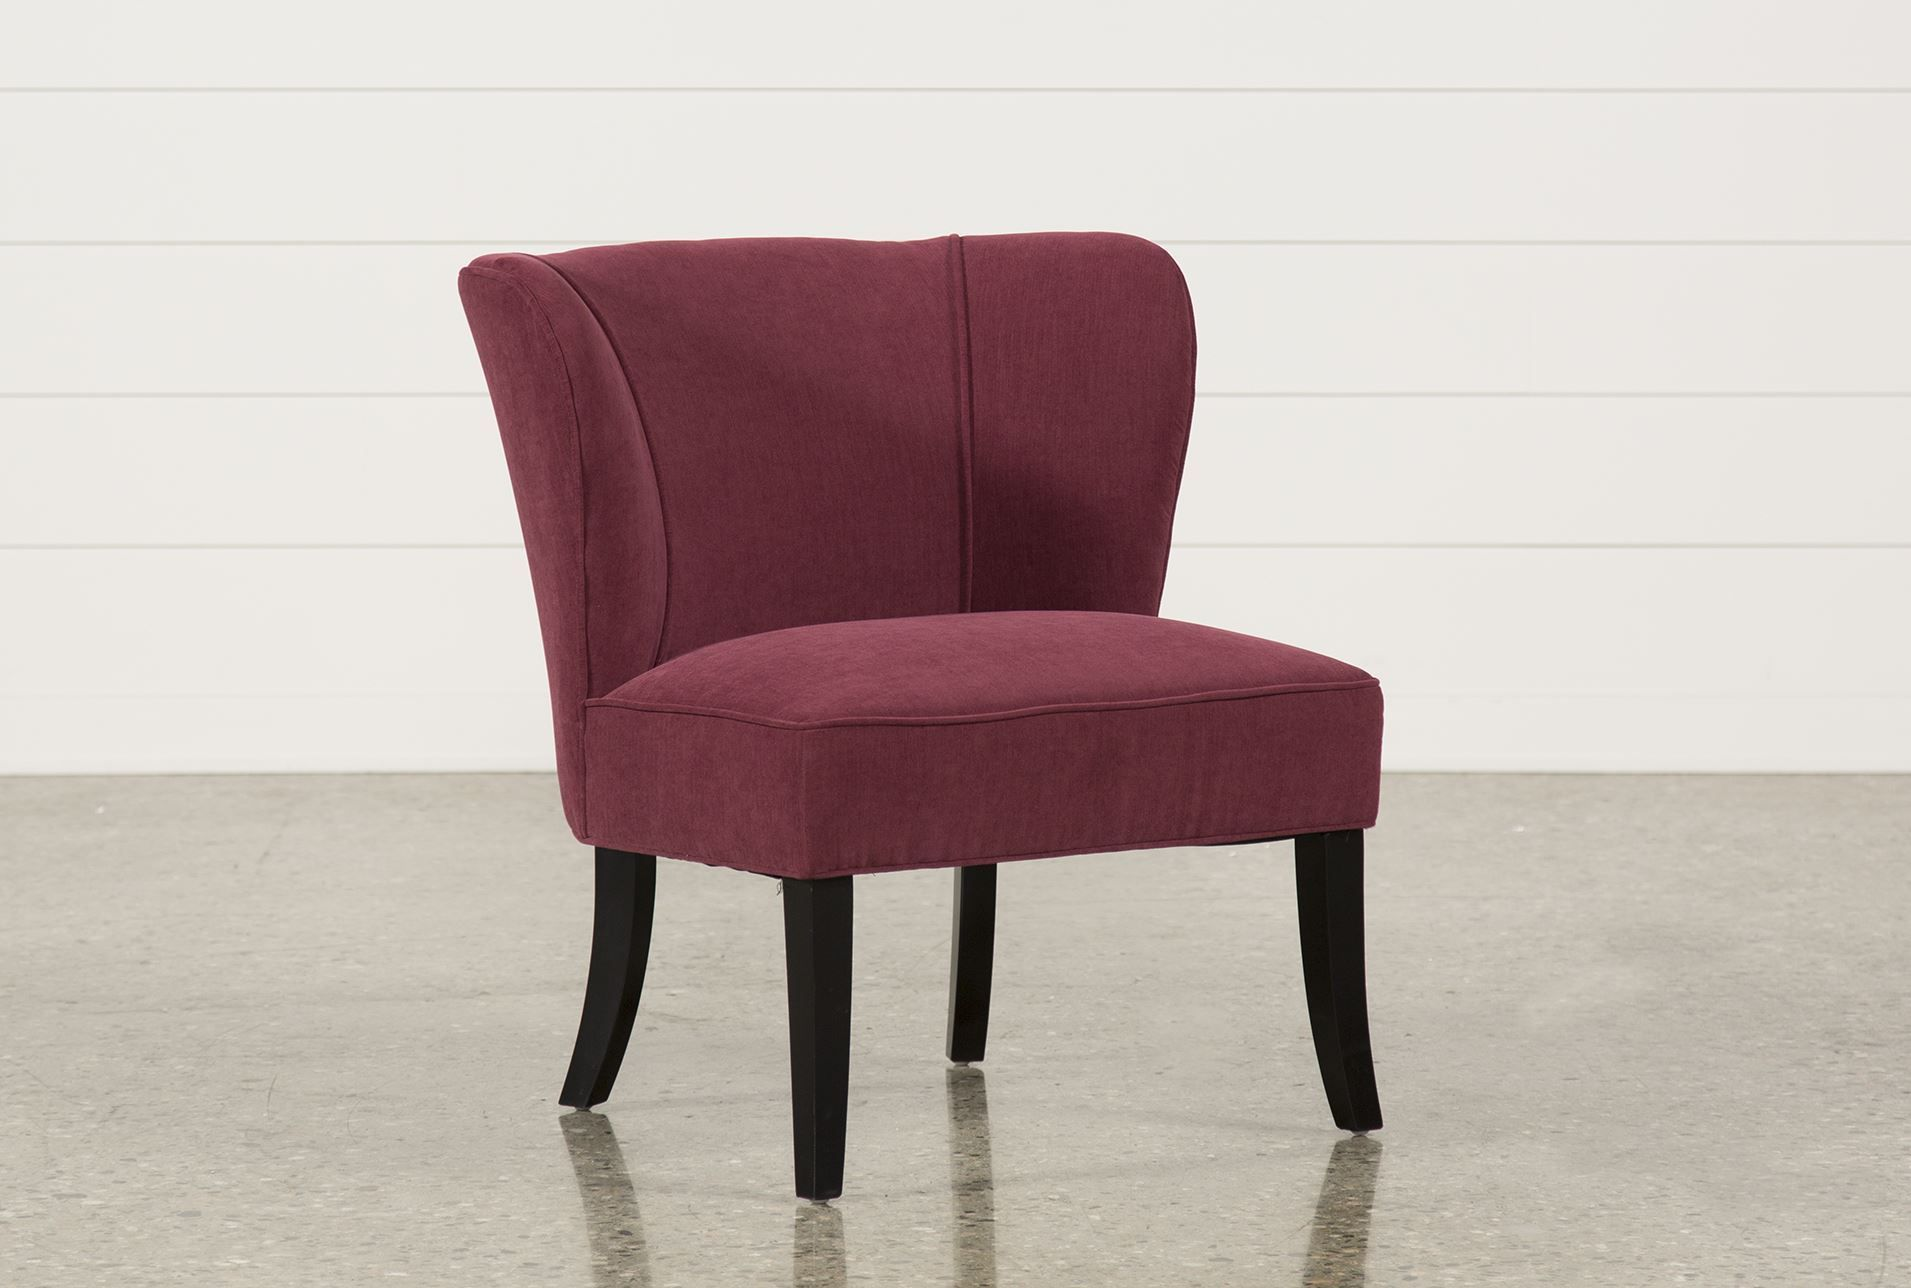 Sensational Riley Raspberry Accent Chair30 3W X 28 8D X 33 5H Theyellowbook Wood Chair Design Ideas Theyellowbookinfo